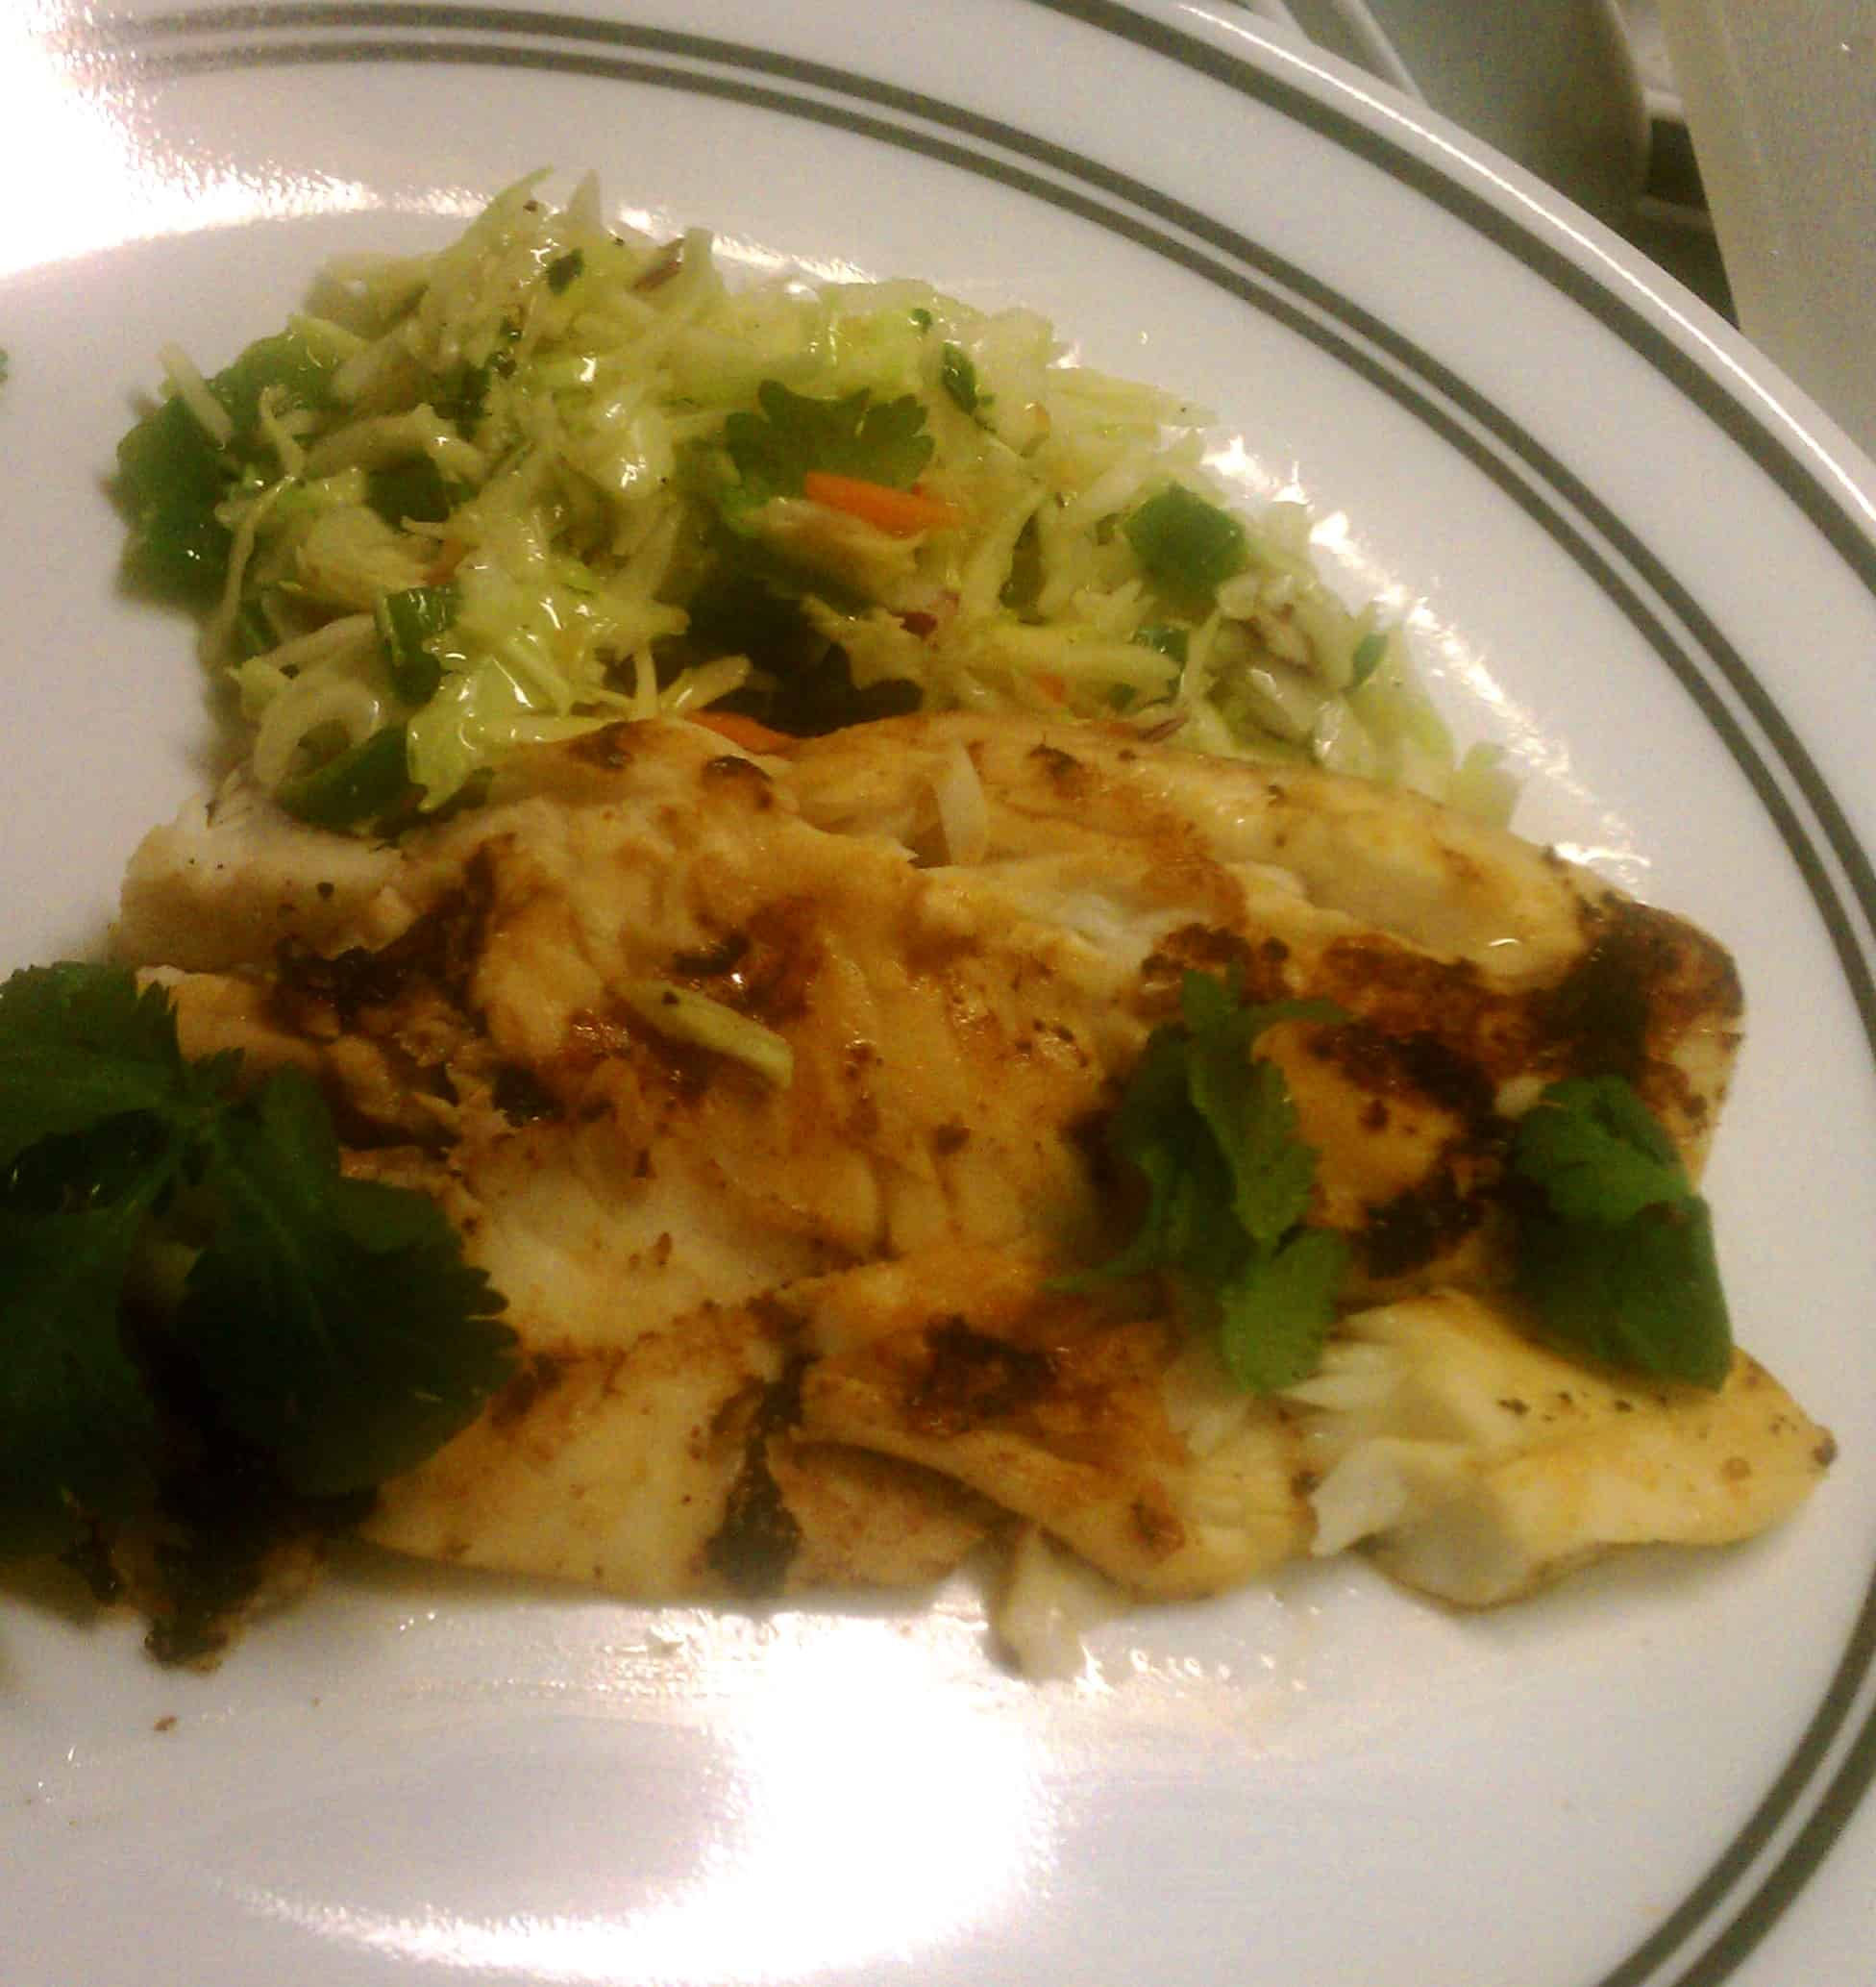 Grilled Tilapia with Jalapeno Slaw